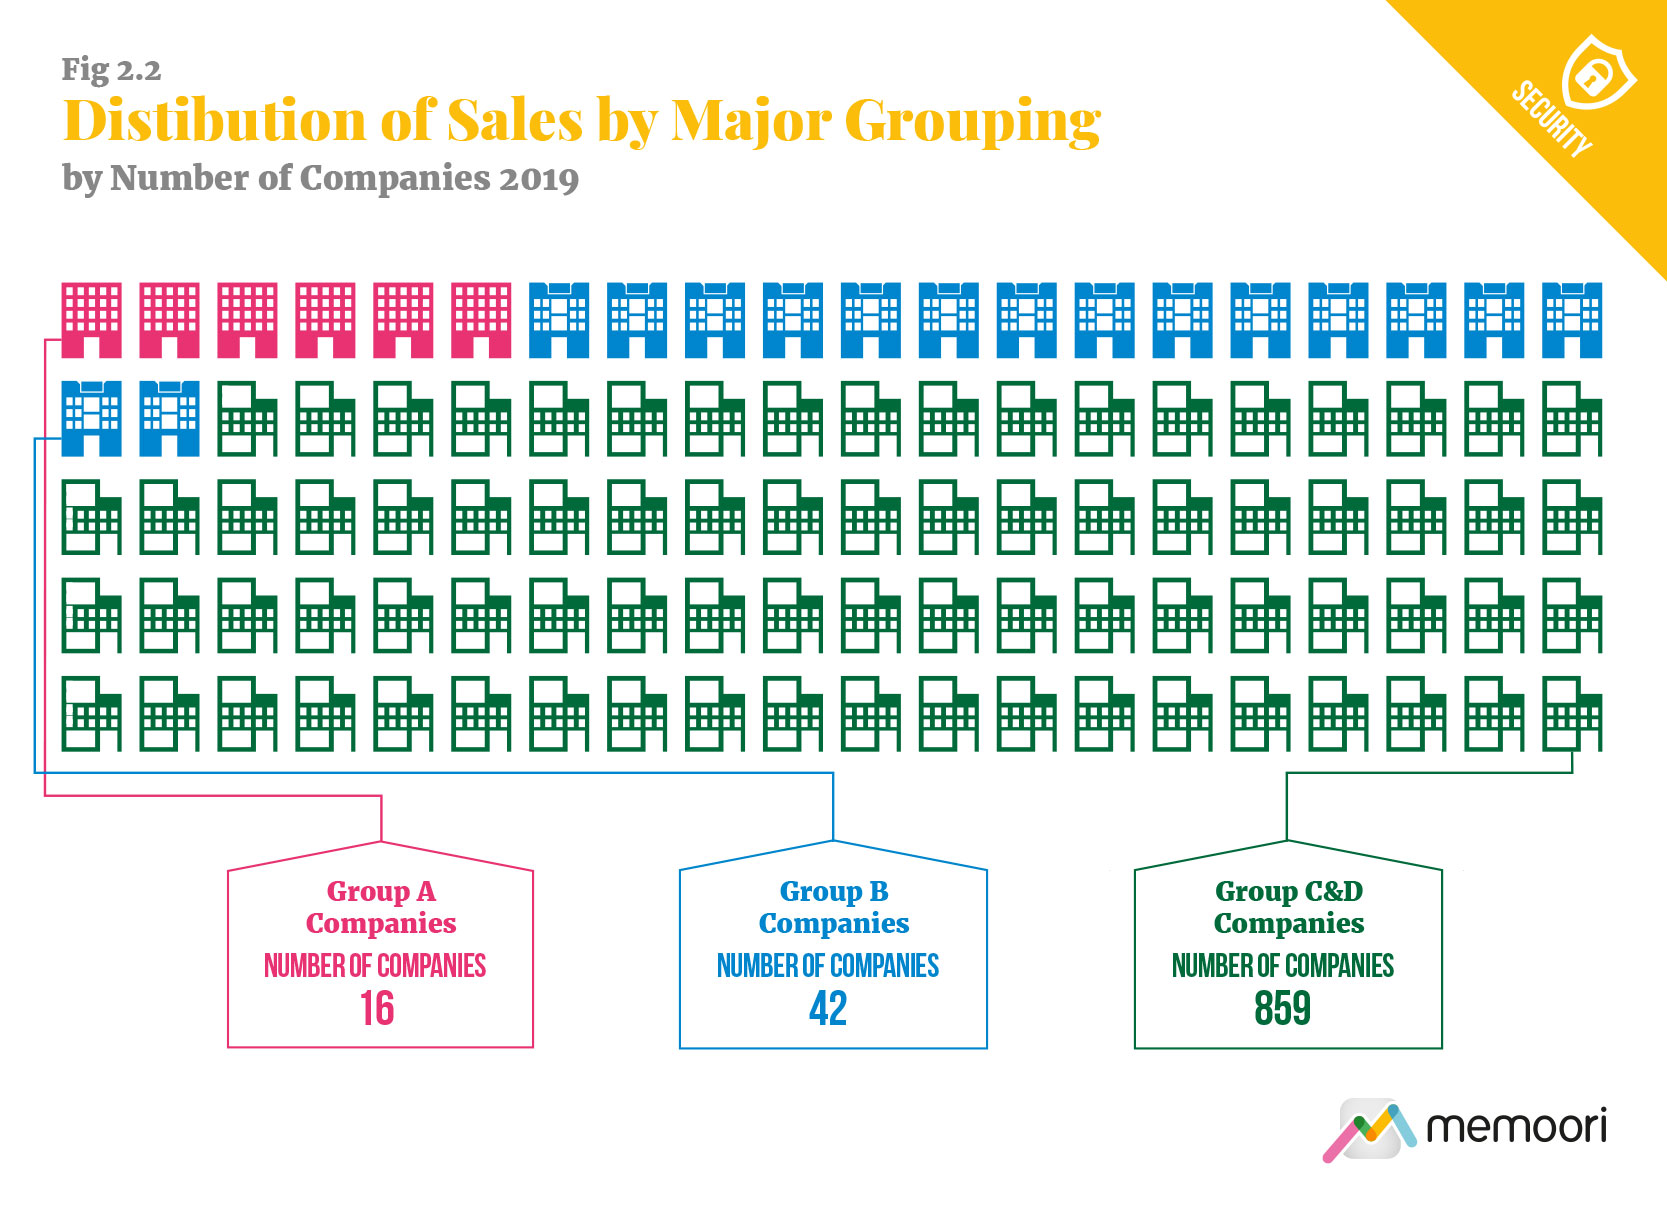 Distribution of sales by major grouping